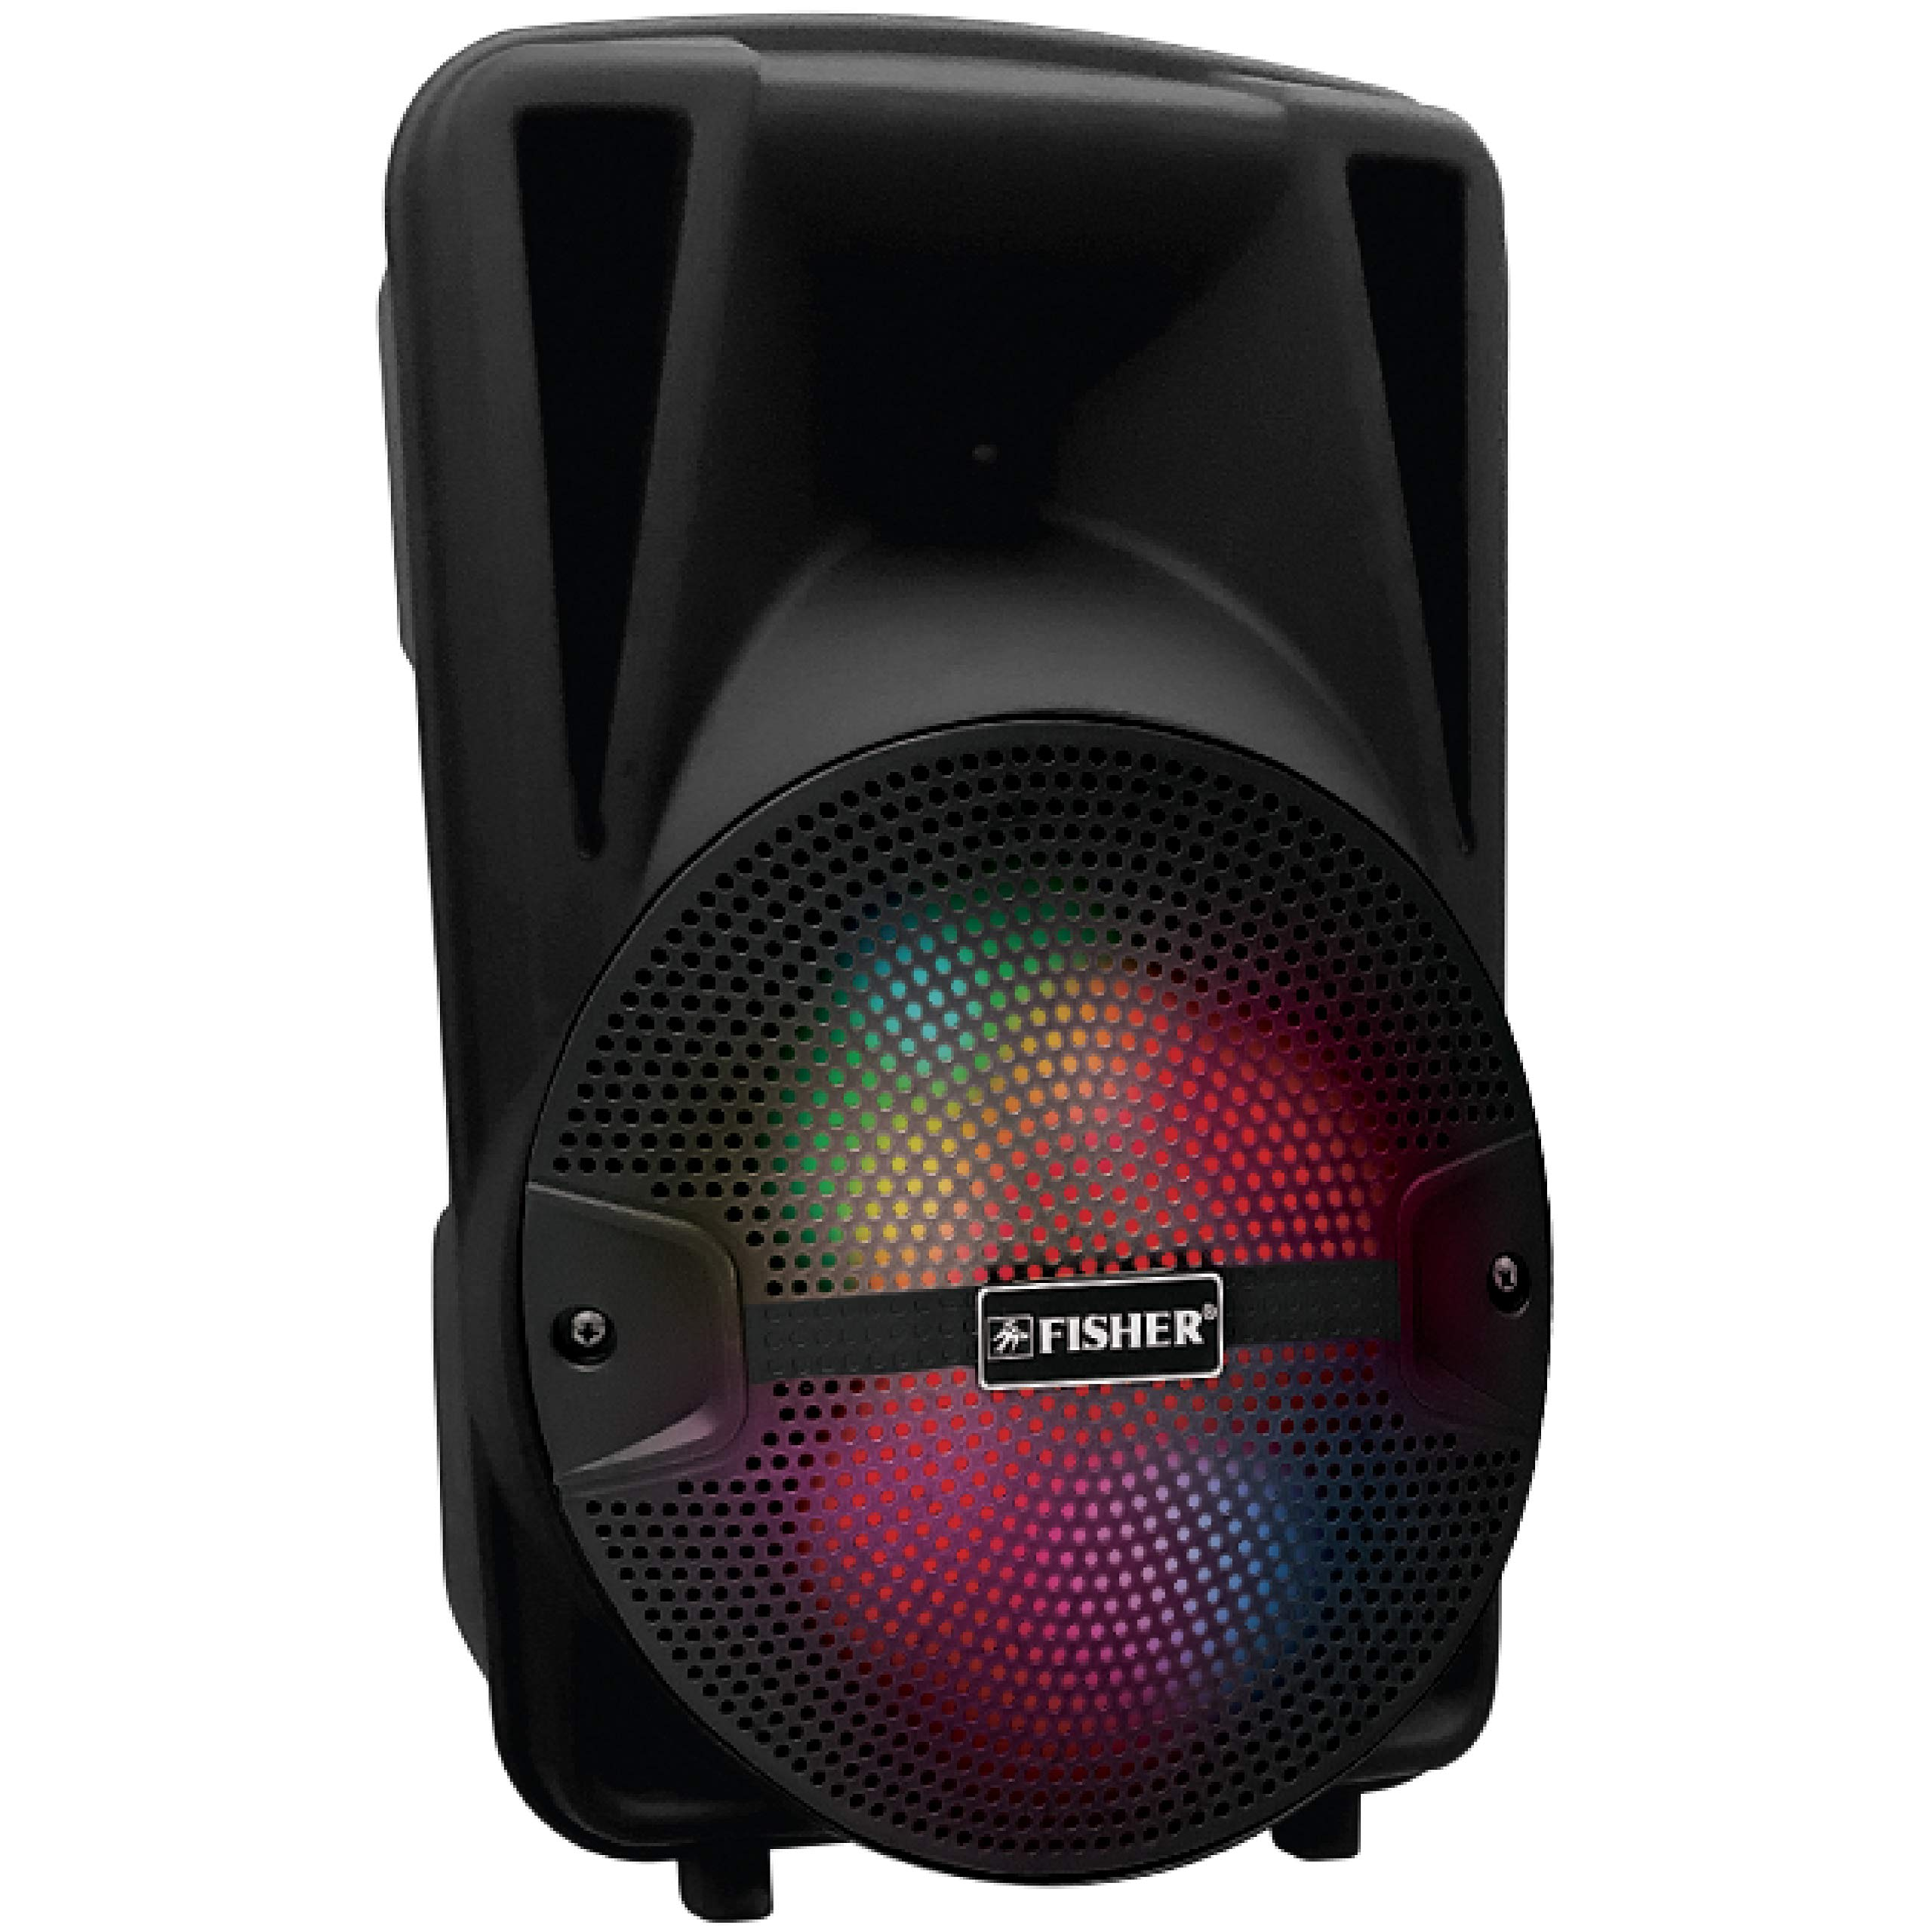 Fisher FBX815K 8-Inch Wireless Portable Bluetooth Karaoke Speaker System with FM Radio, Music, and Loud Powered Bass for Conference, Parties, and Outdoor Use